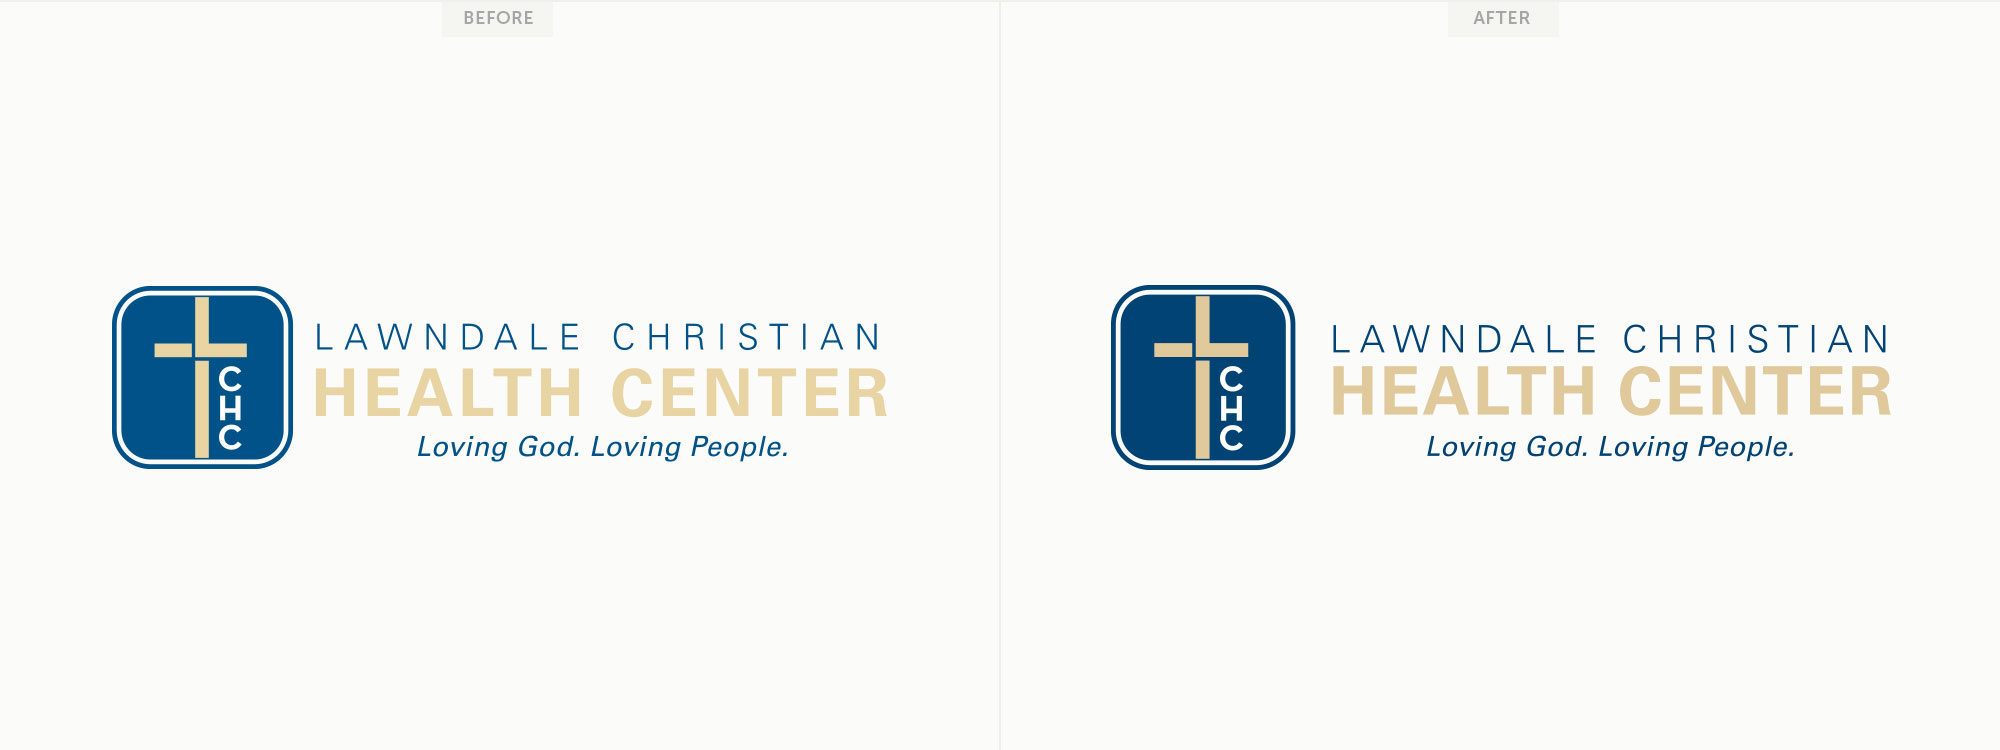 Before and after for Lawndale Christian Health Center's logo.Image copyright Jeff Miller, HellothisisJeff Design LLC